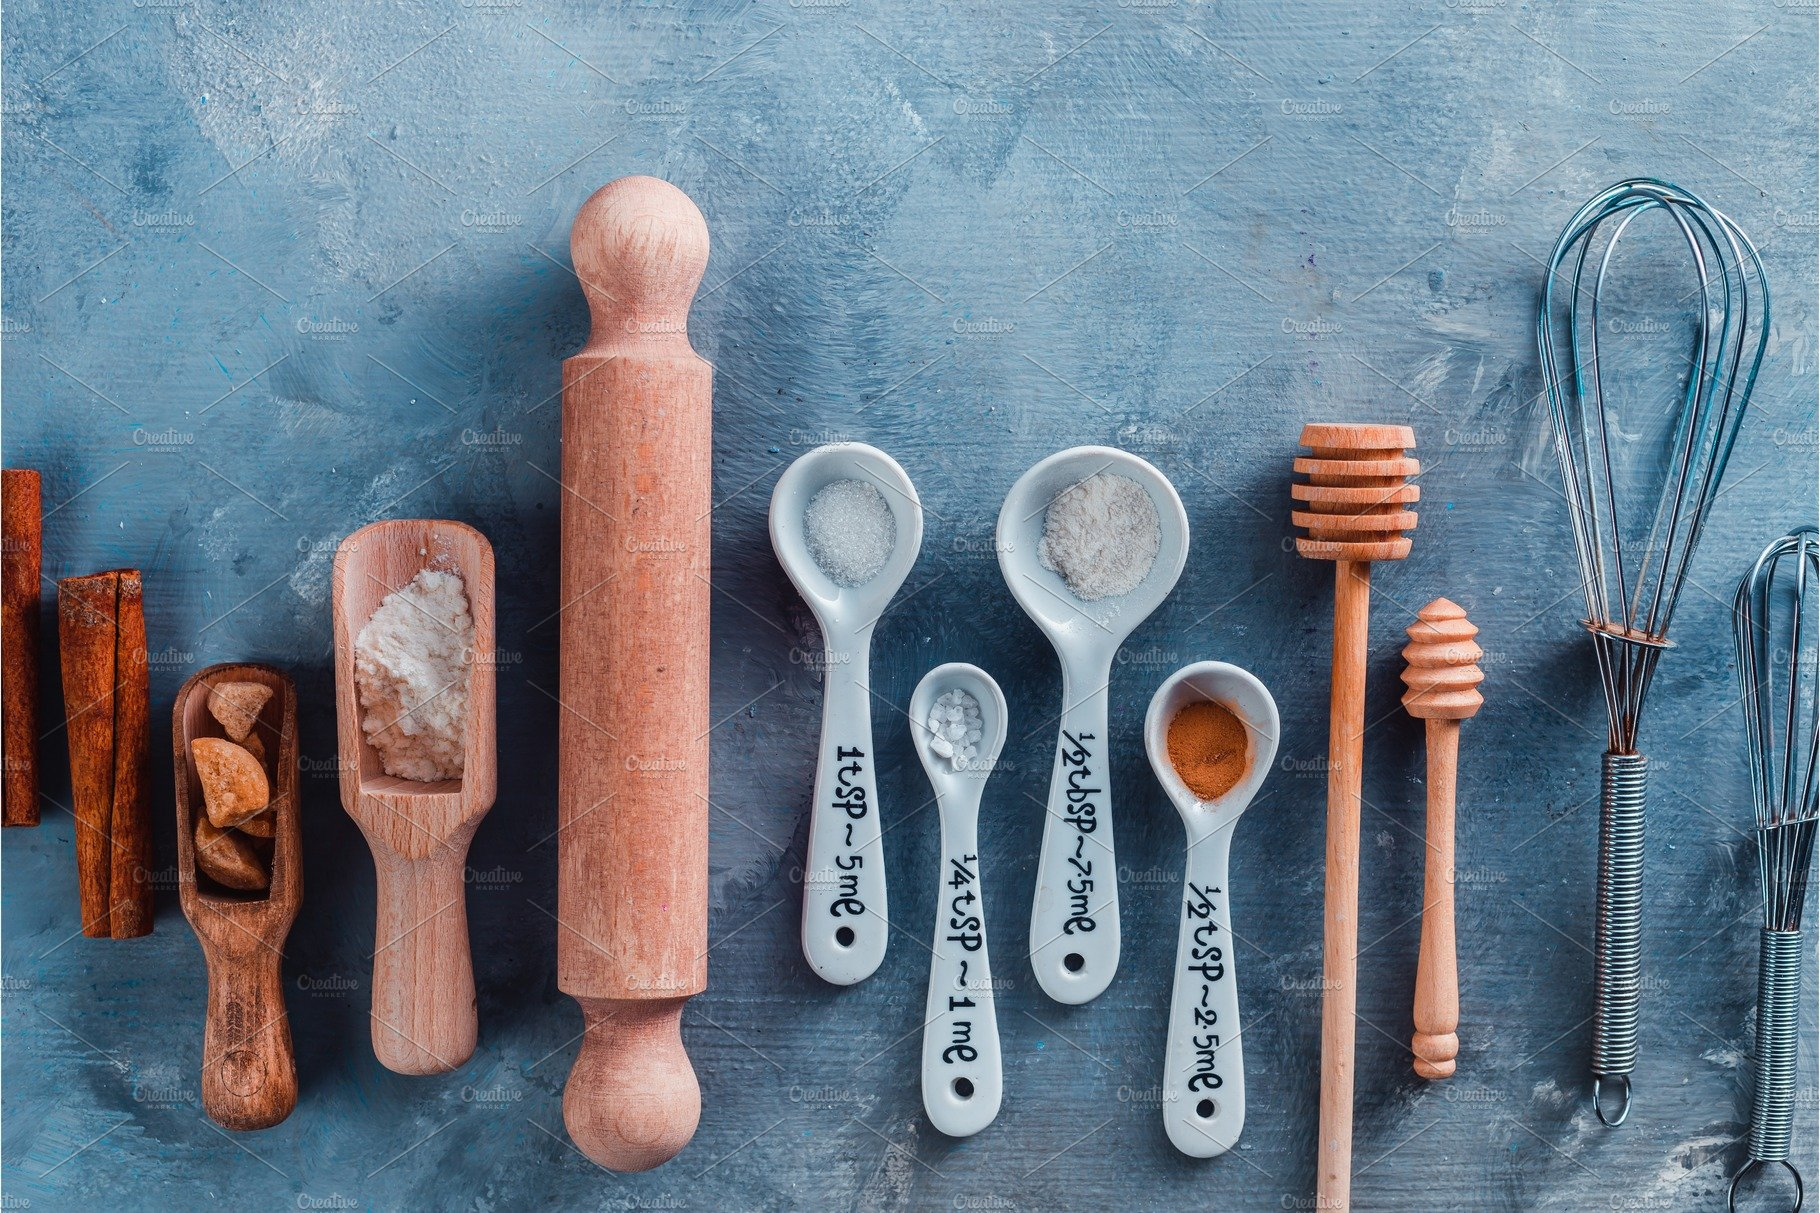 Kitchen utensils for baking, rolling pin and measuring spoons on a ...